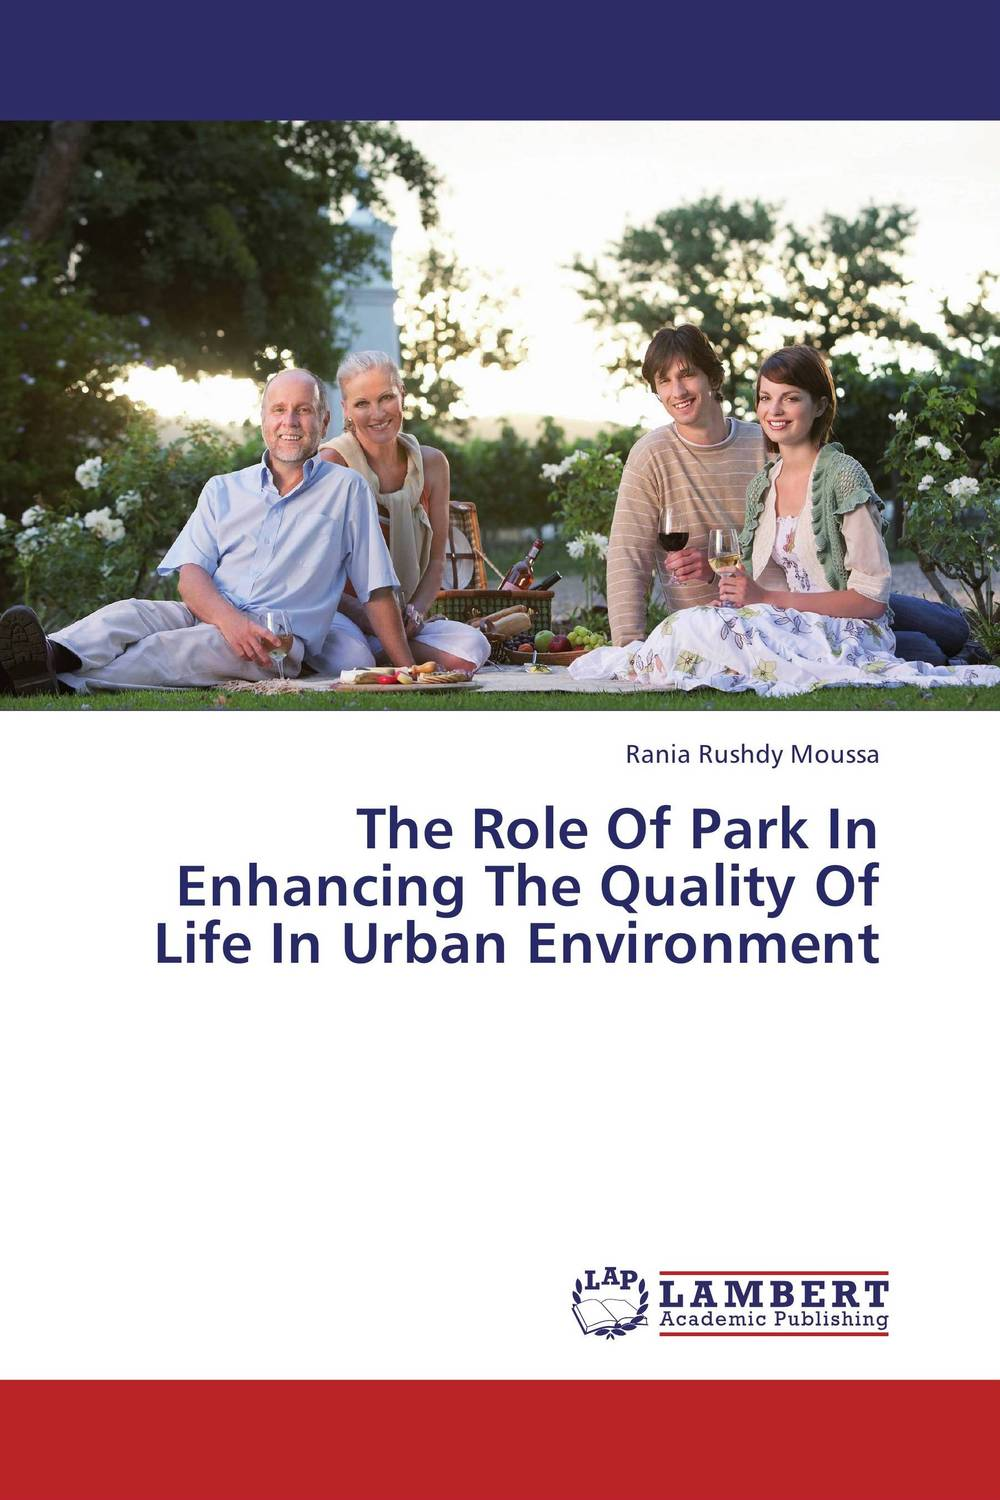 The Role Of Park In Enhancing The Quality Of Life In Urban Environment father's role in enhancing children's development